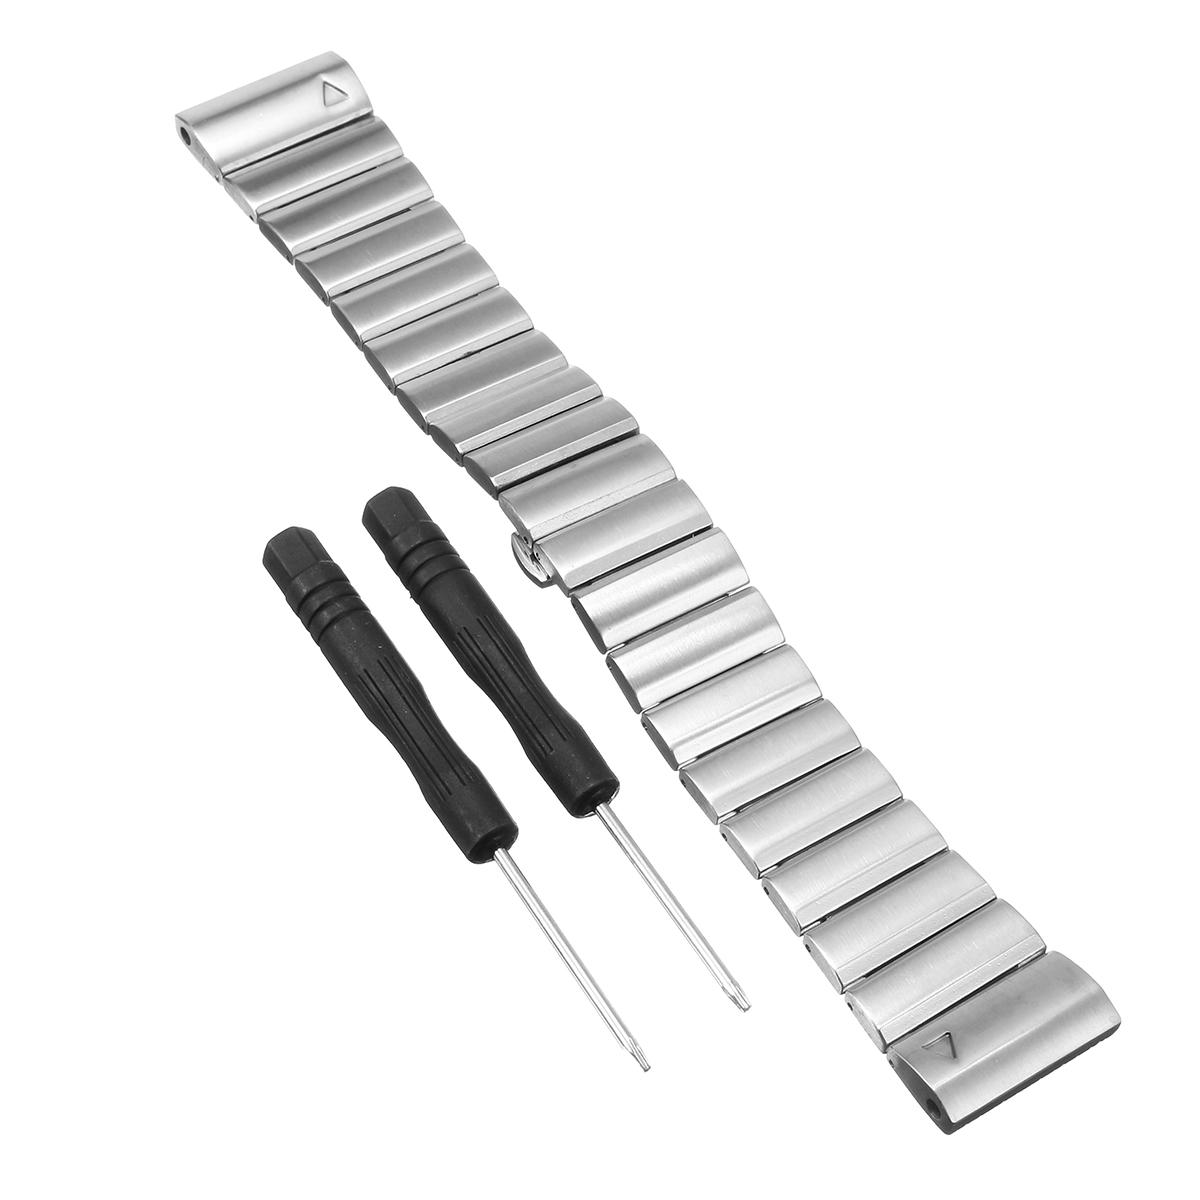 185MM Replacement Metal Stainless Steel Watch Band Strap For Garmin Fenix 3